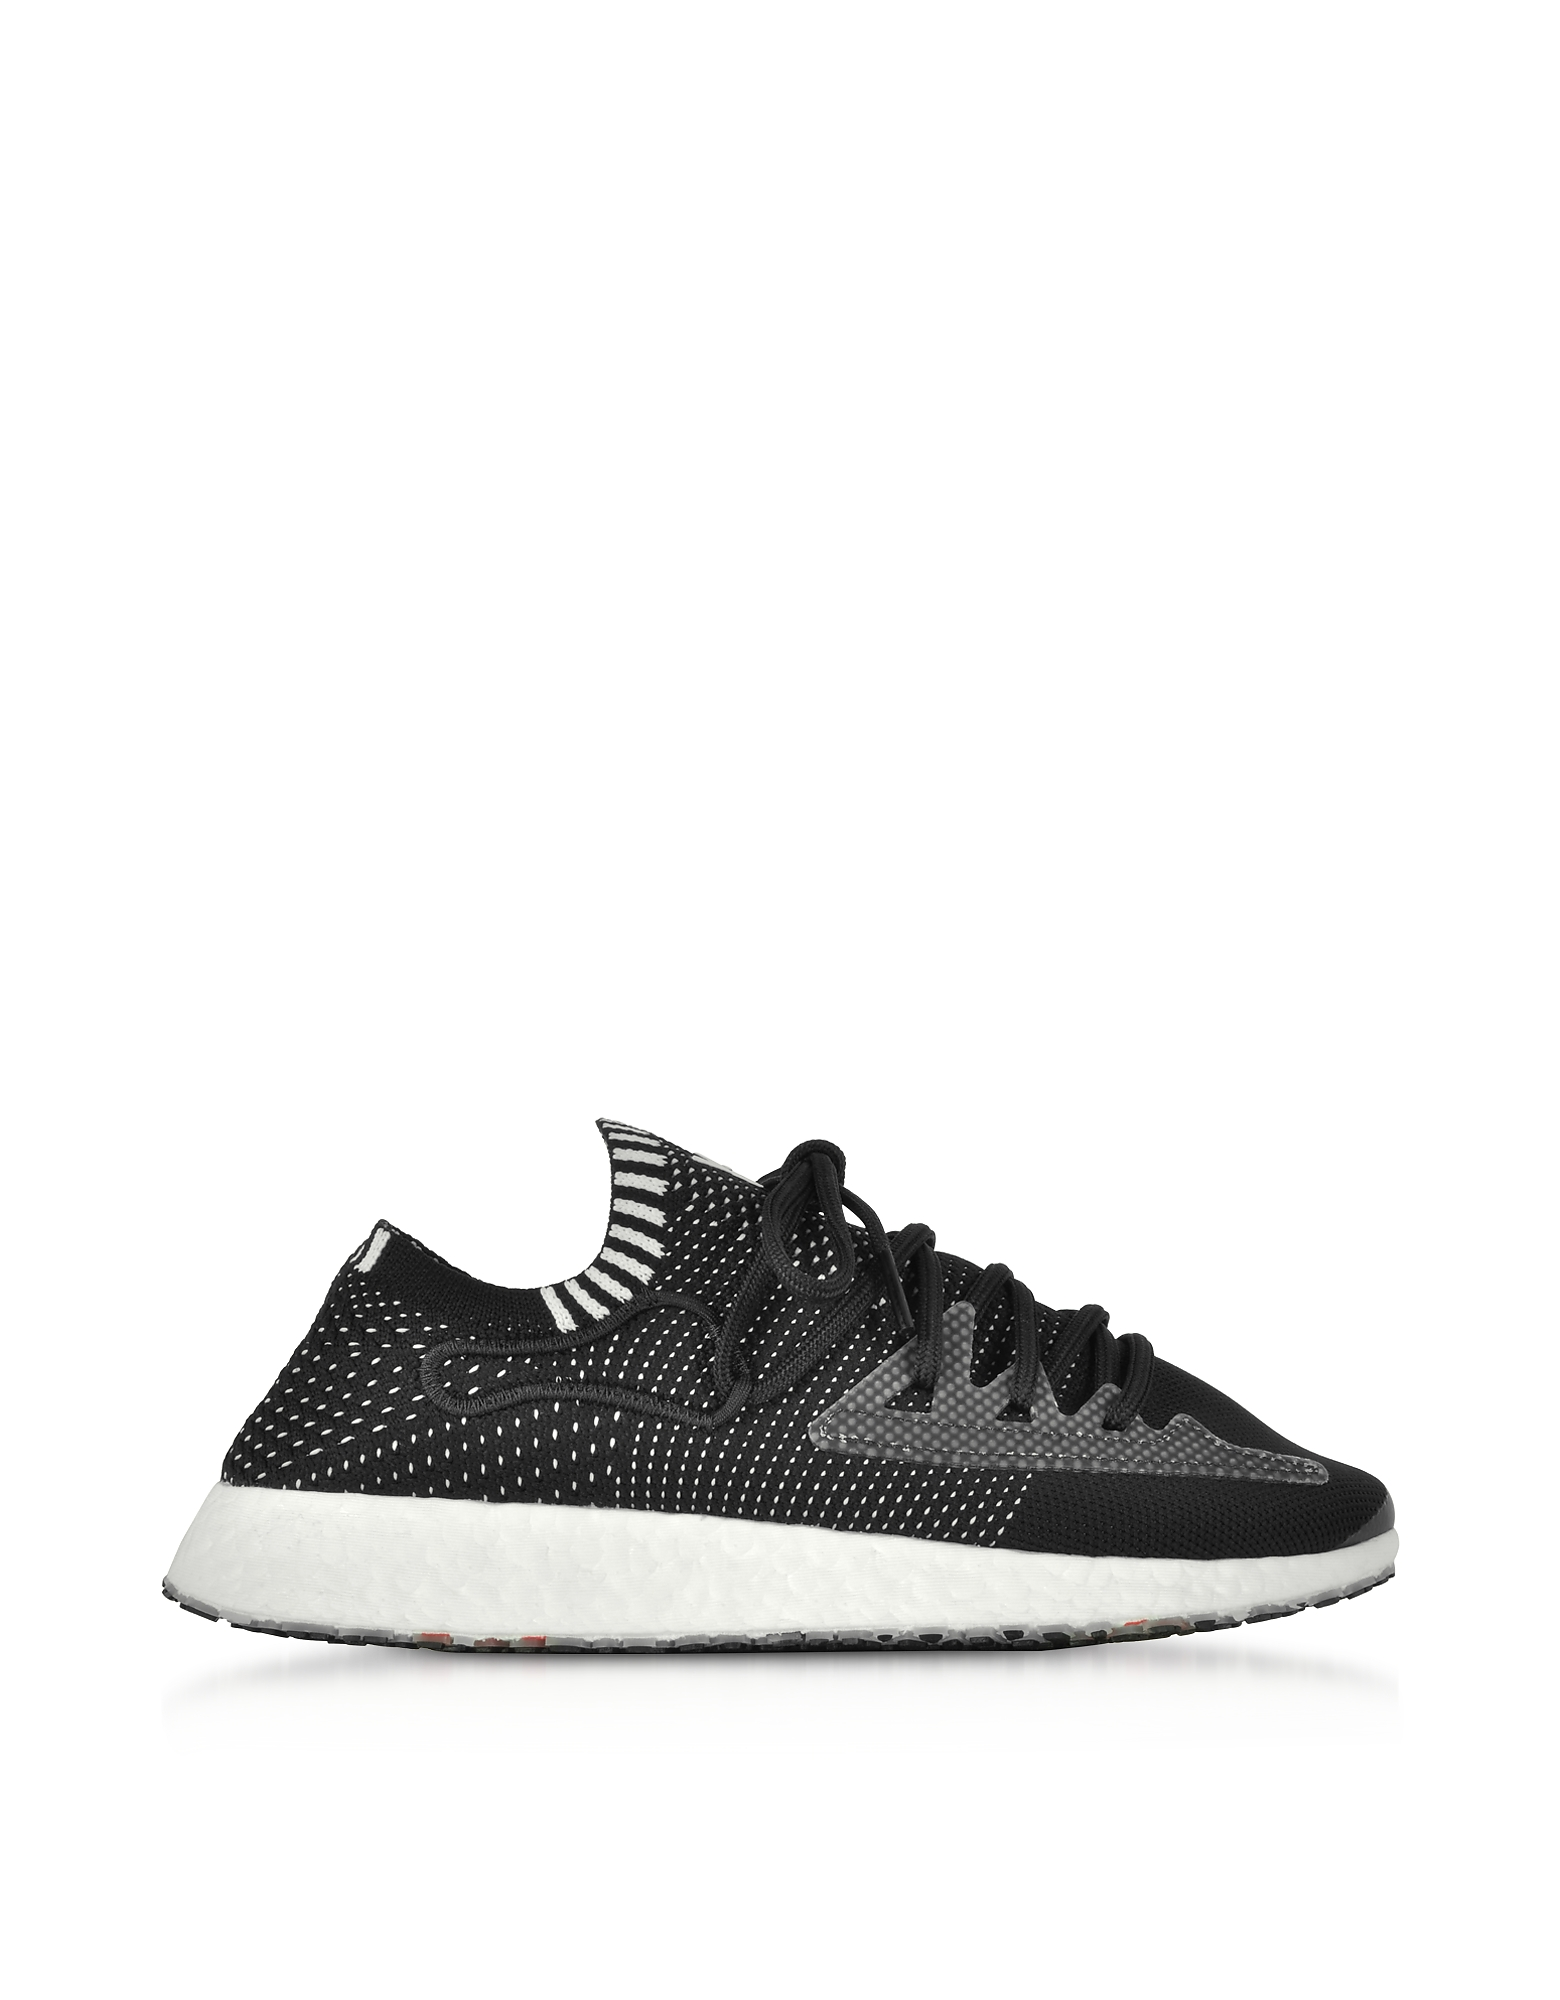 Y3 Ratio Racer - Sneakers Basses Homme en Nylon Noir. Y3 Ratio Racer - Sneakers Basses Homme en Nylon Noir